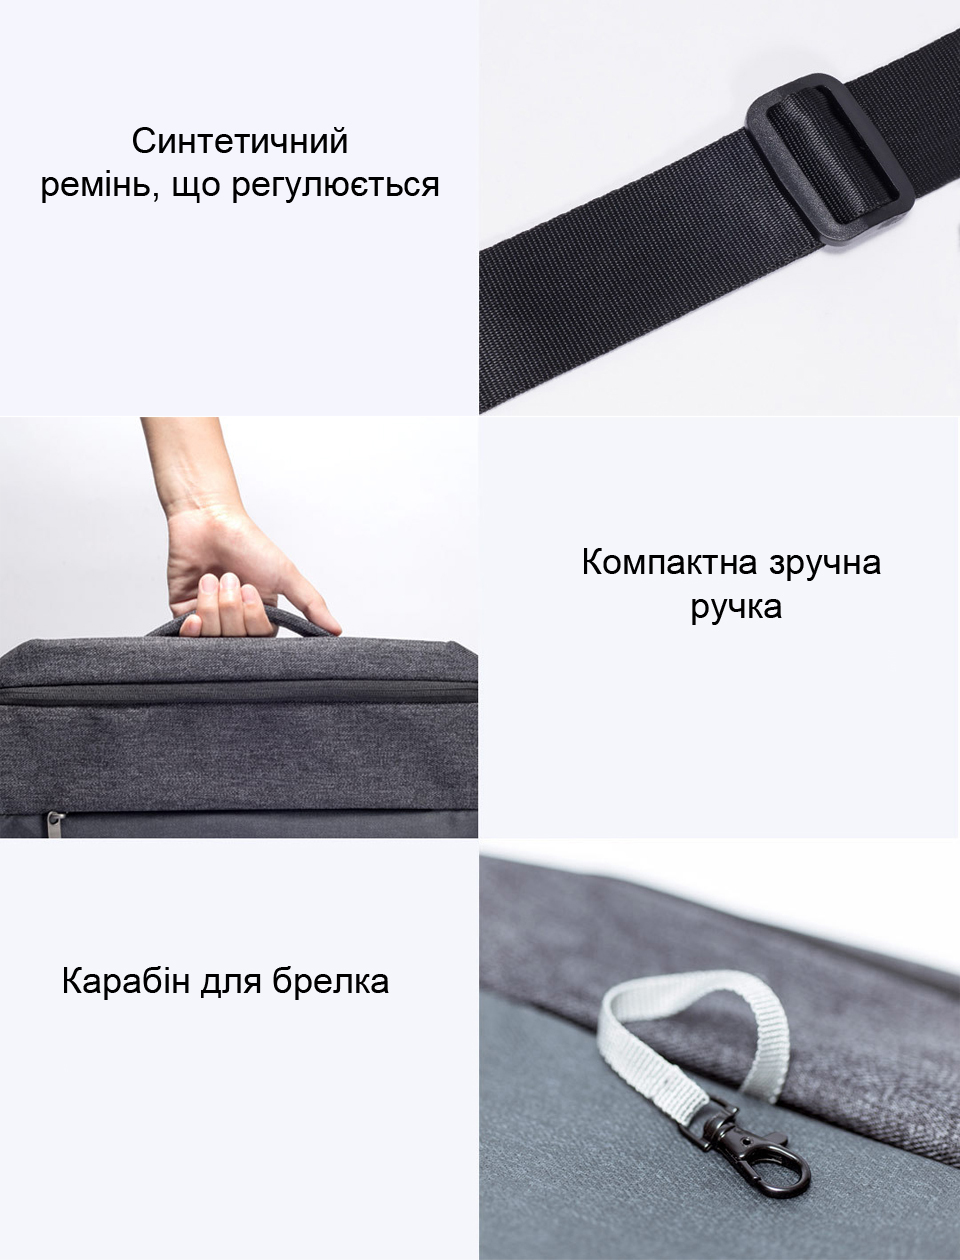 RunMi 90GOFUN Urban Simple Mail Bag будова